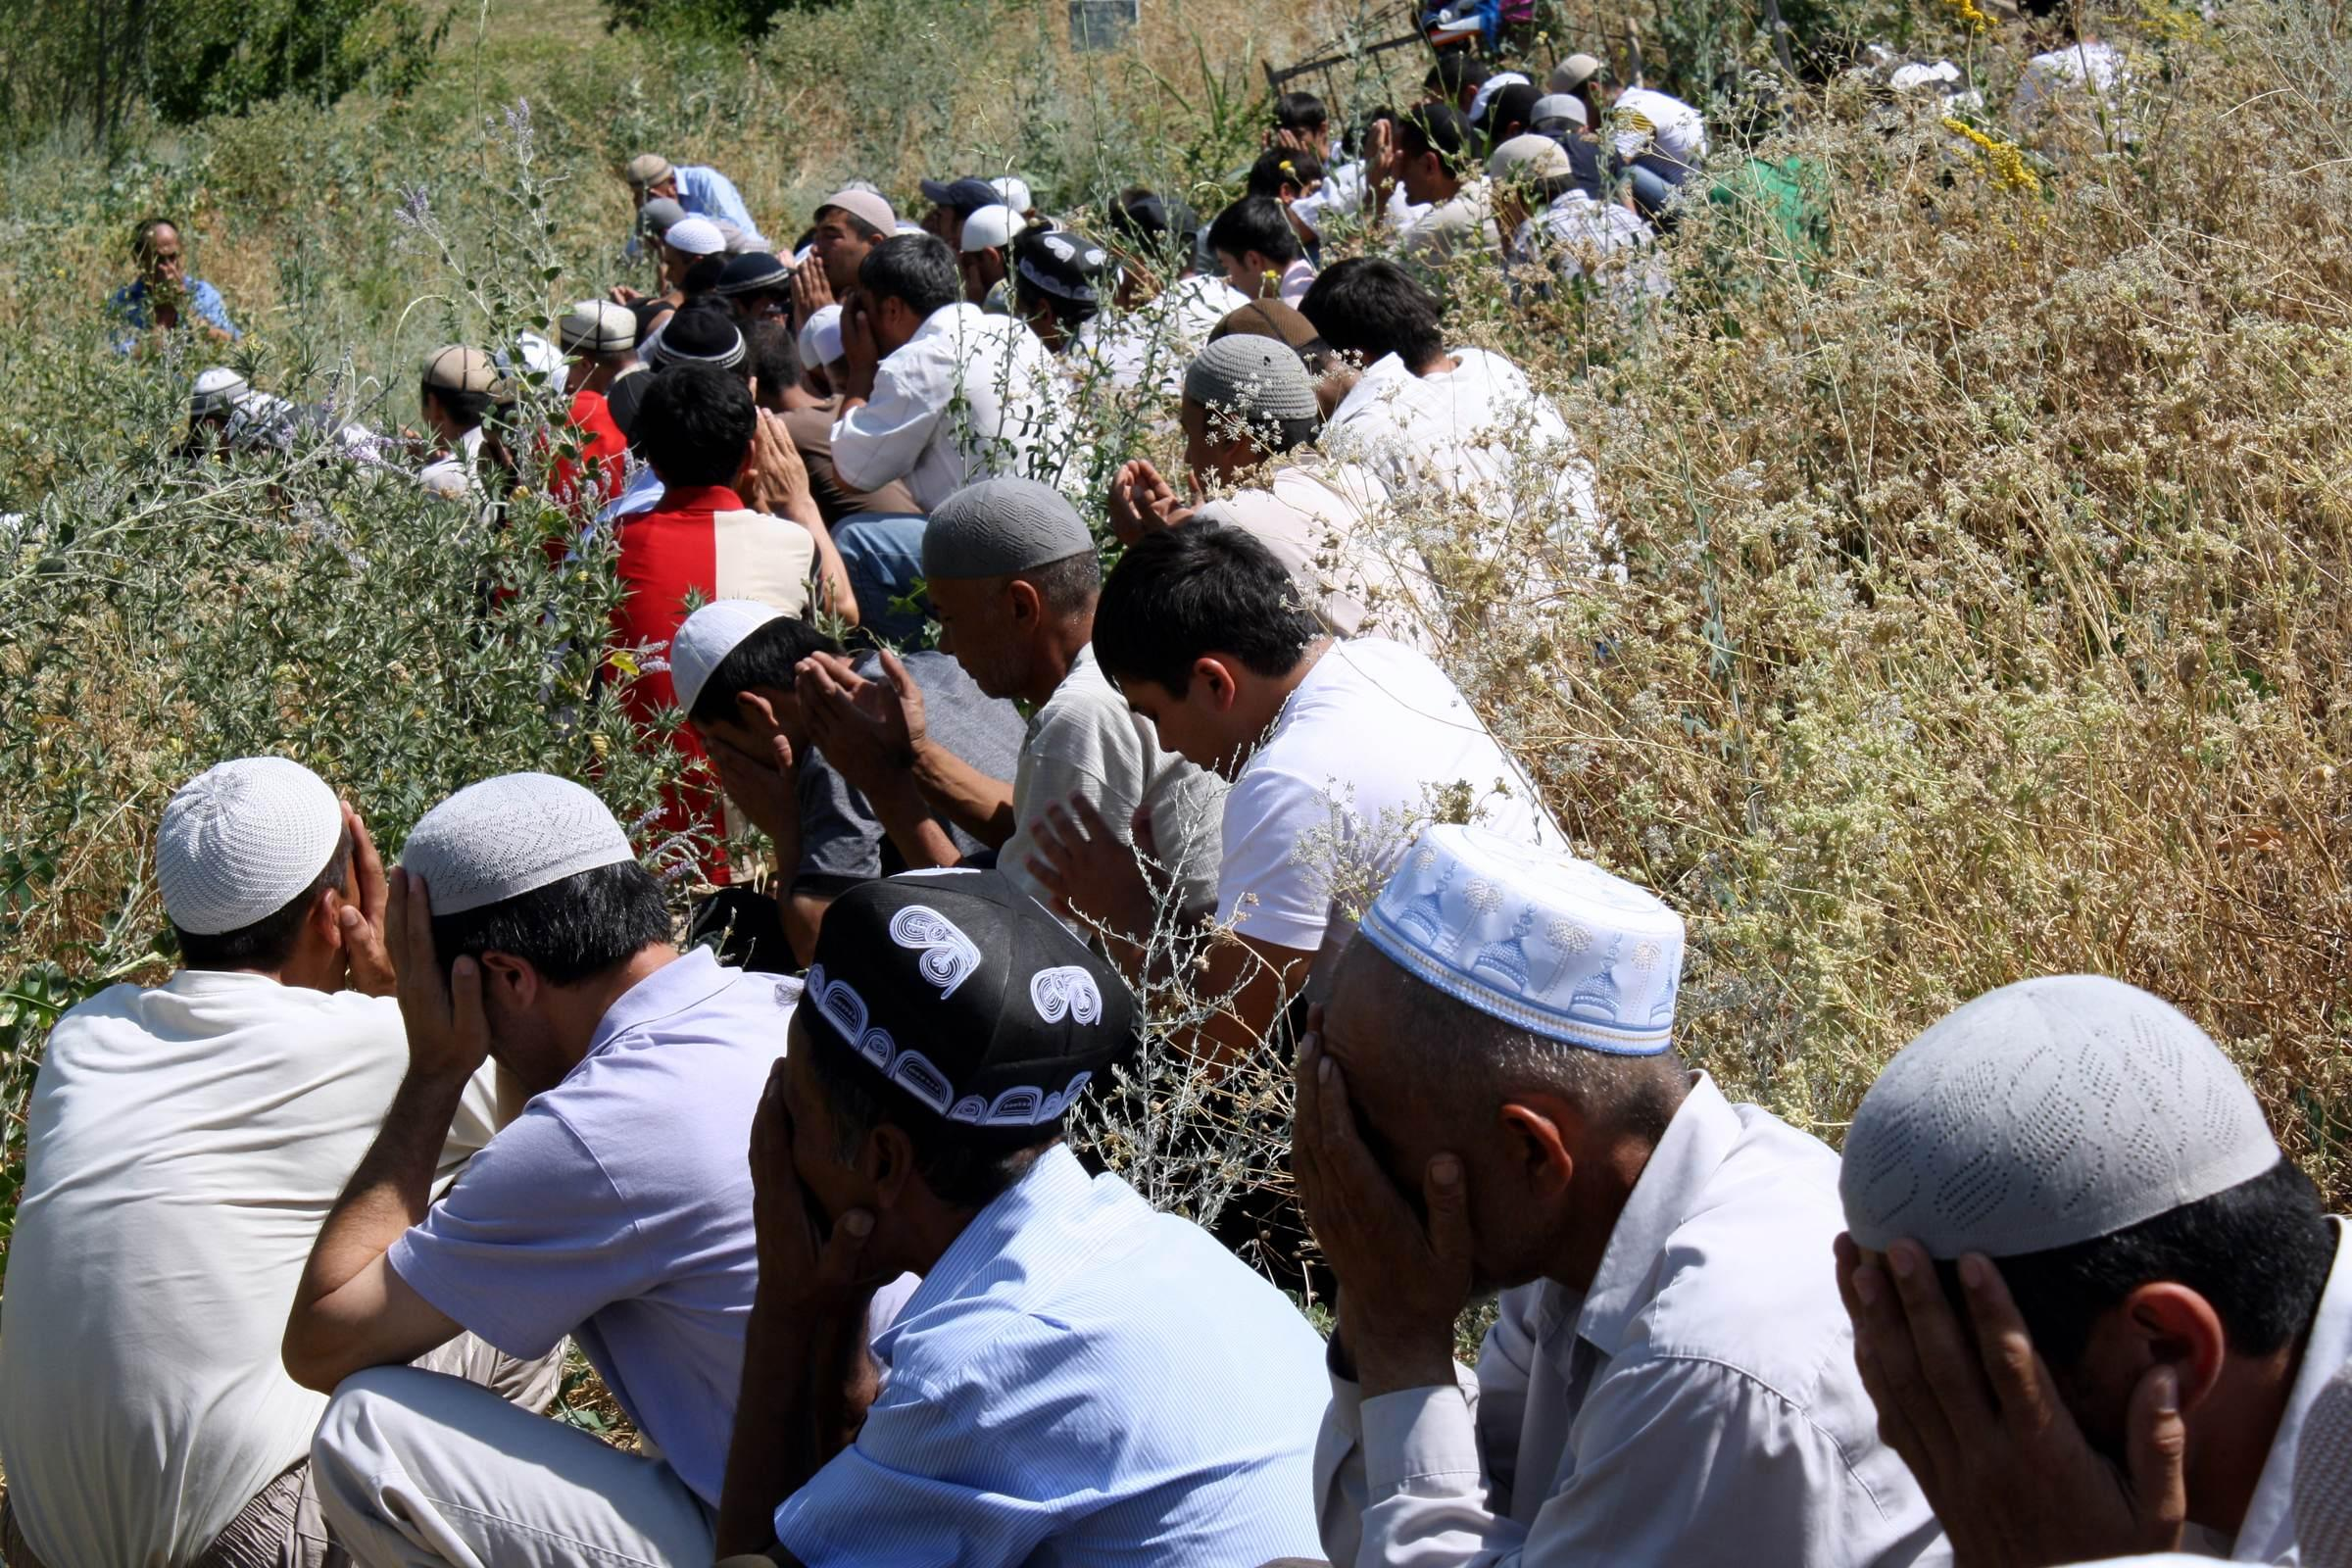 An Urgent Need to Stabilize Kyrgyzstan